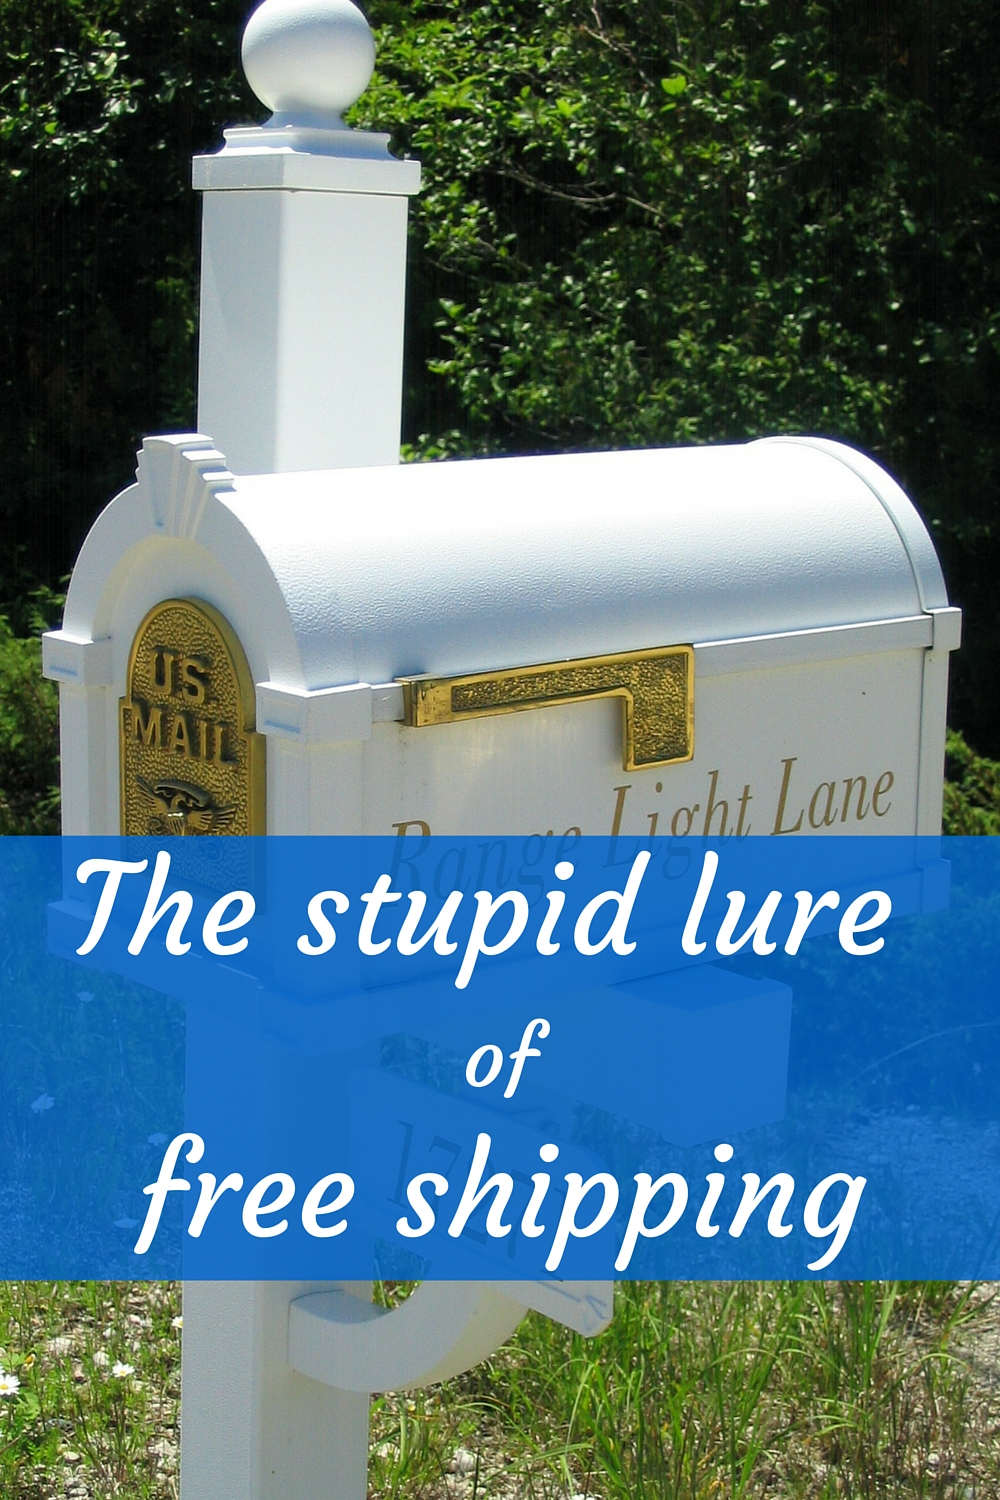 I may be frugal, but free shipping gets me every time!